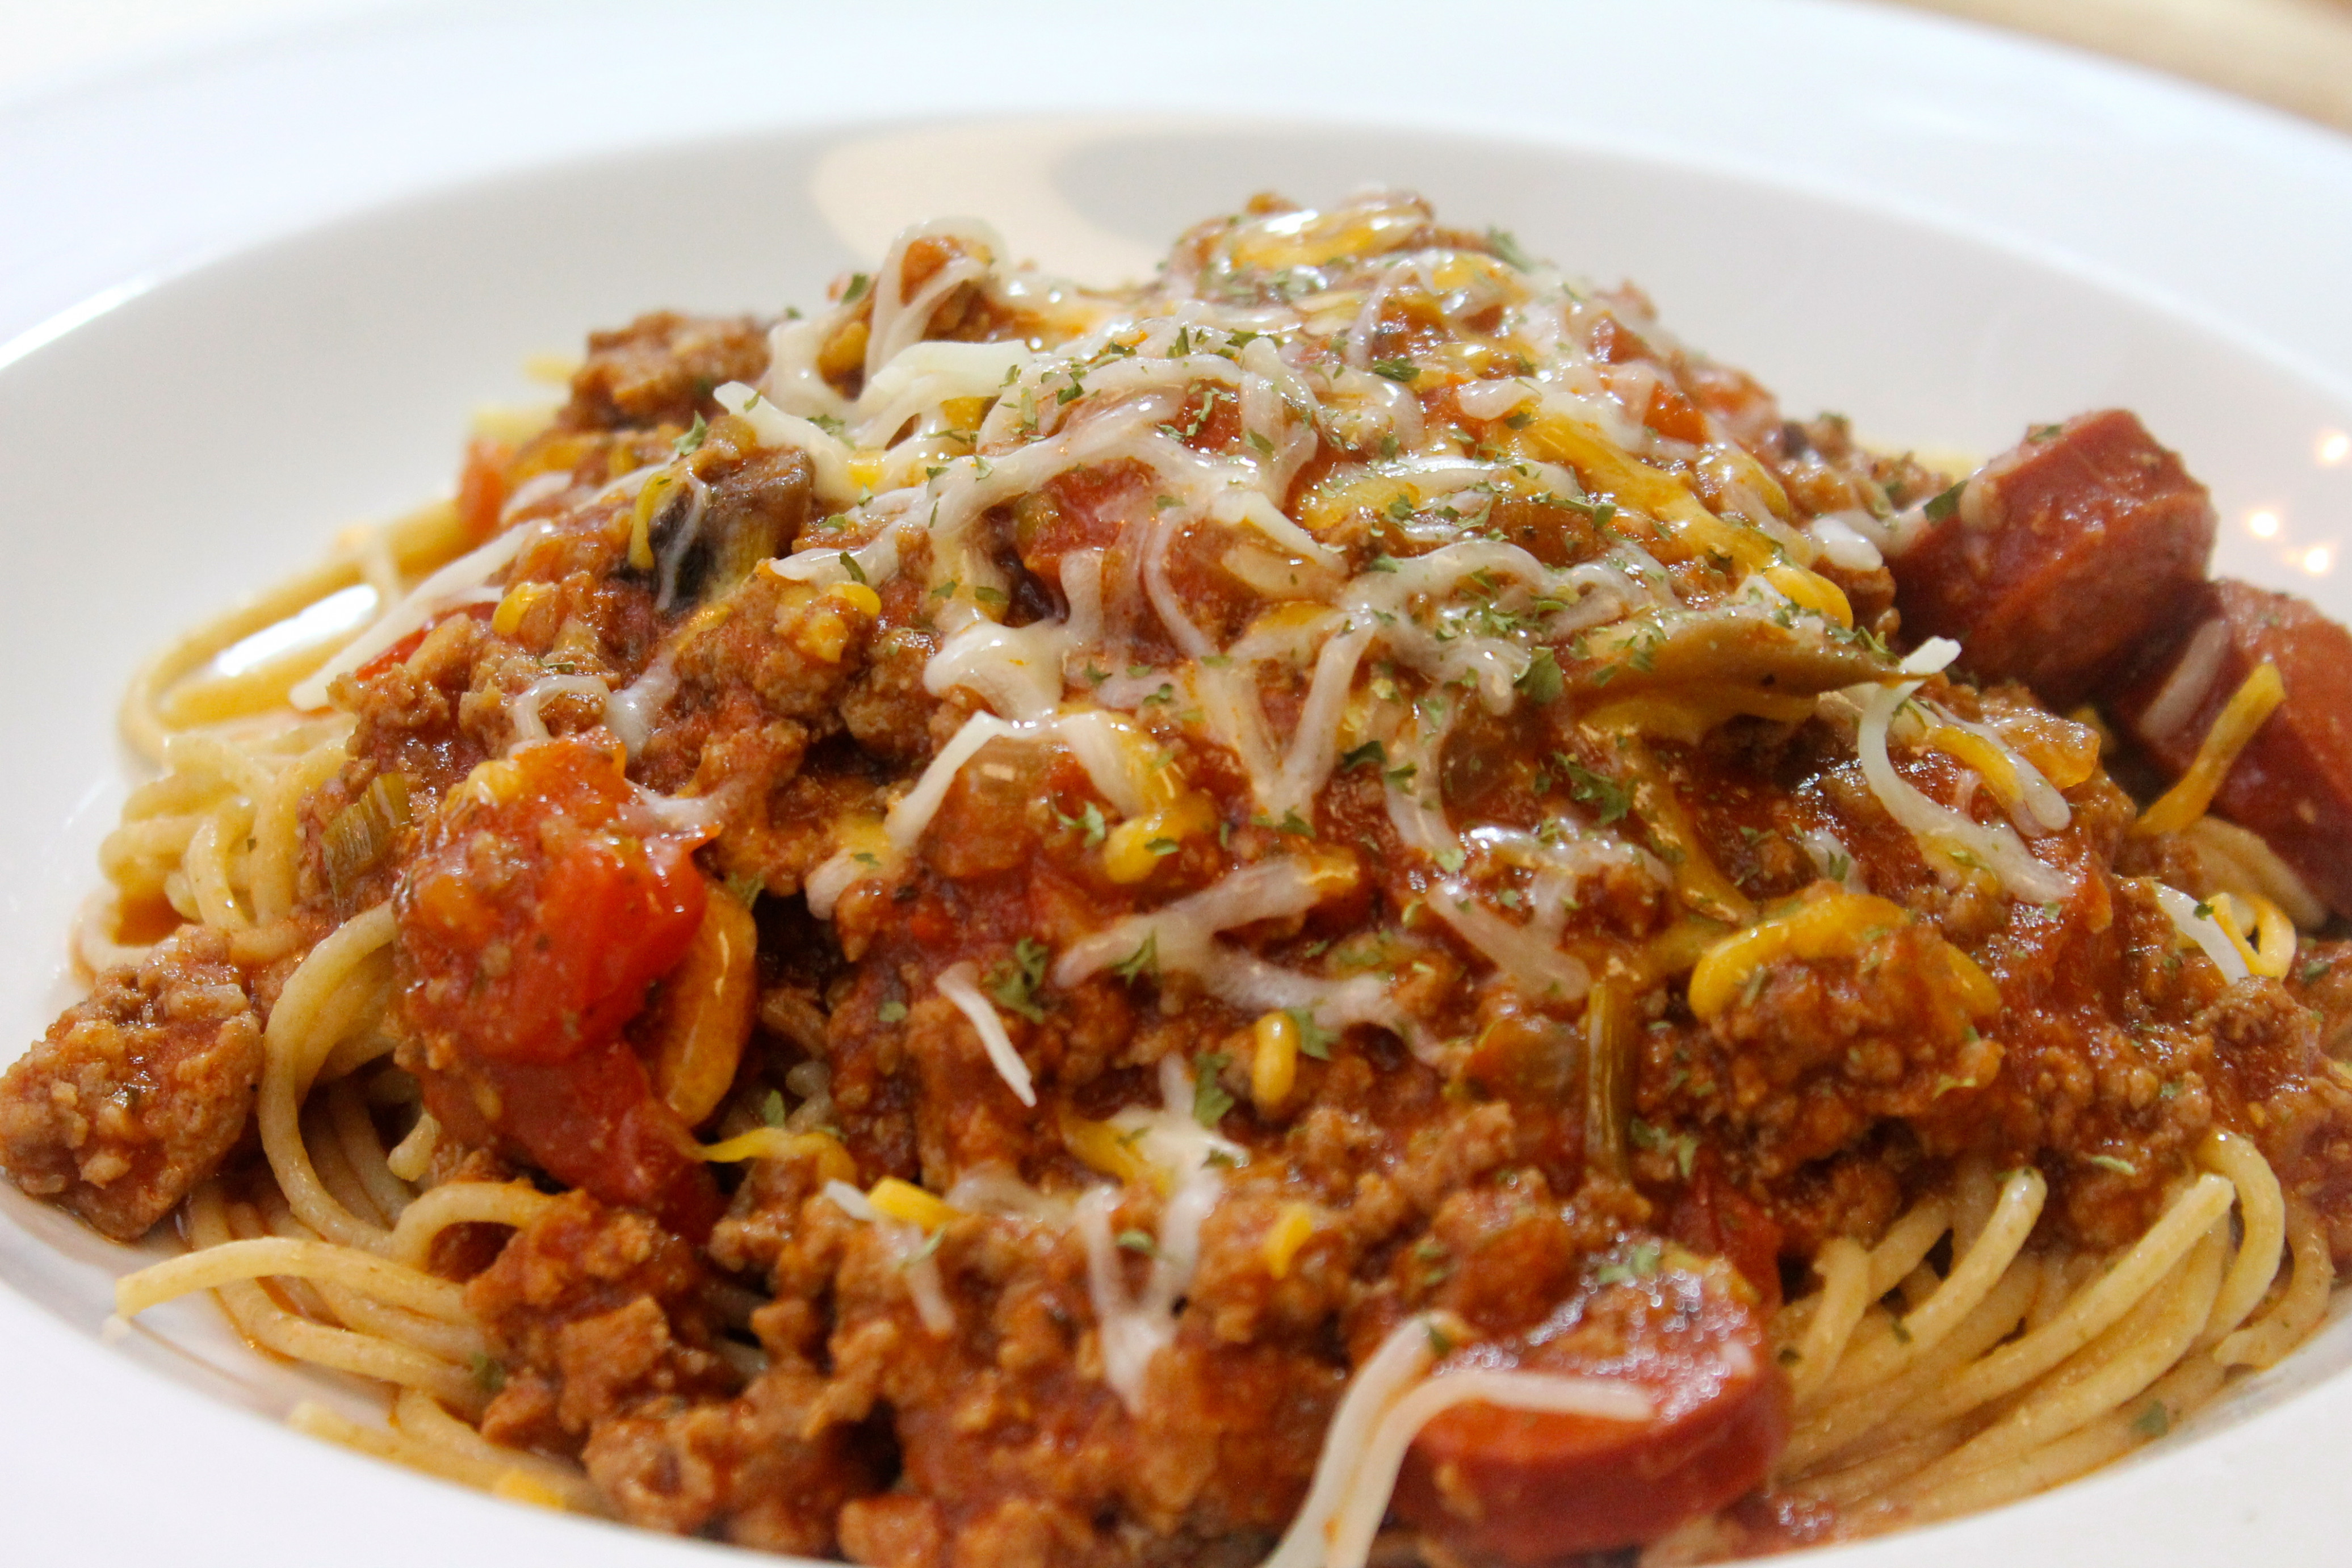 Spaghetti Recipe With Chunky Vegetable And Meat Sauce | I …